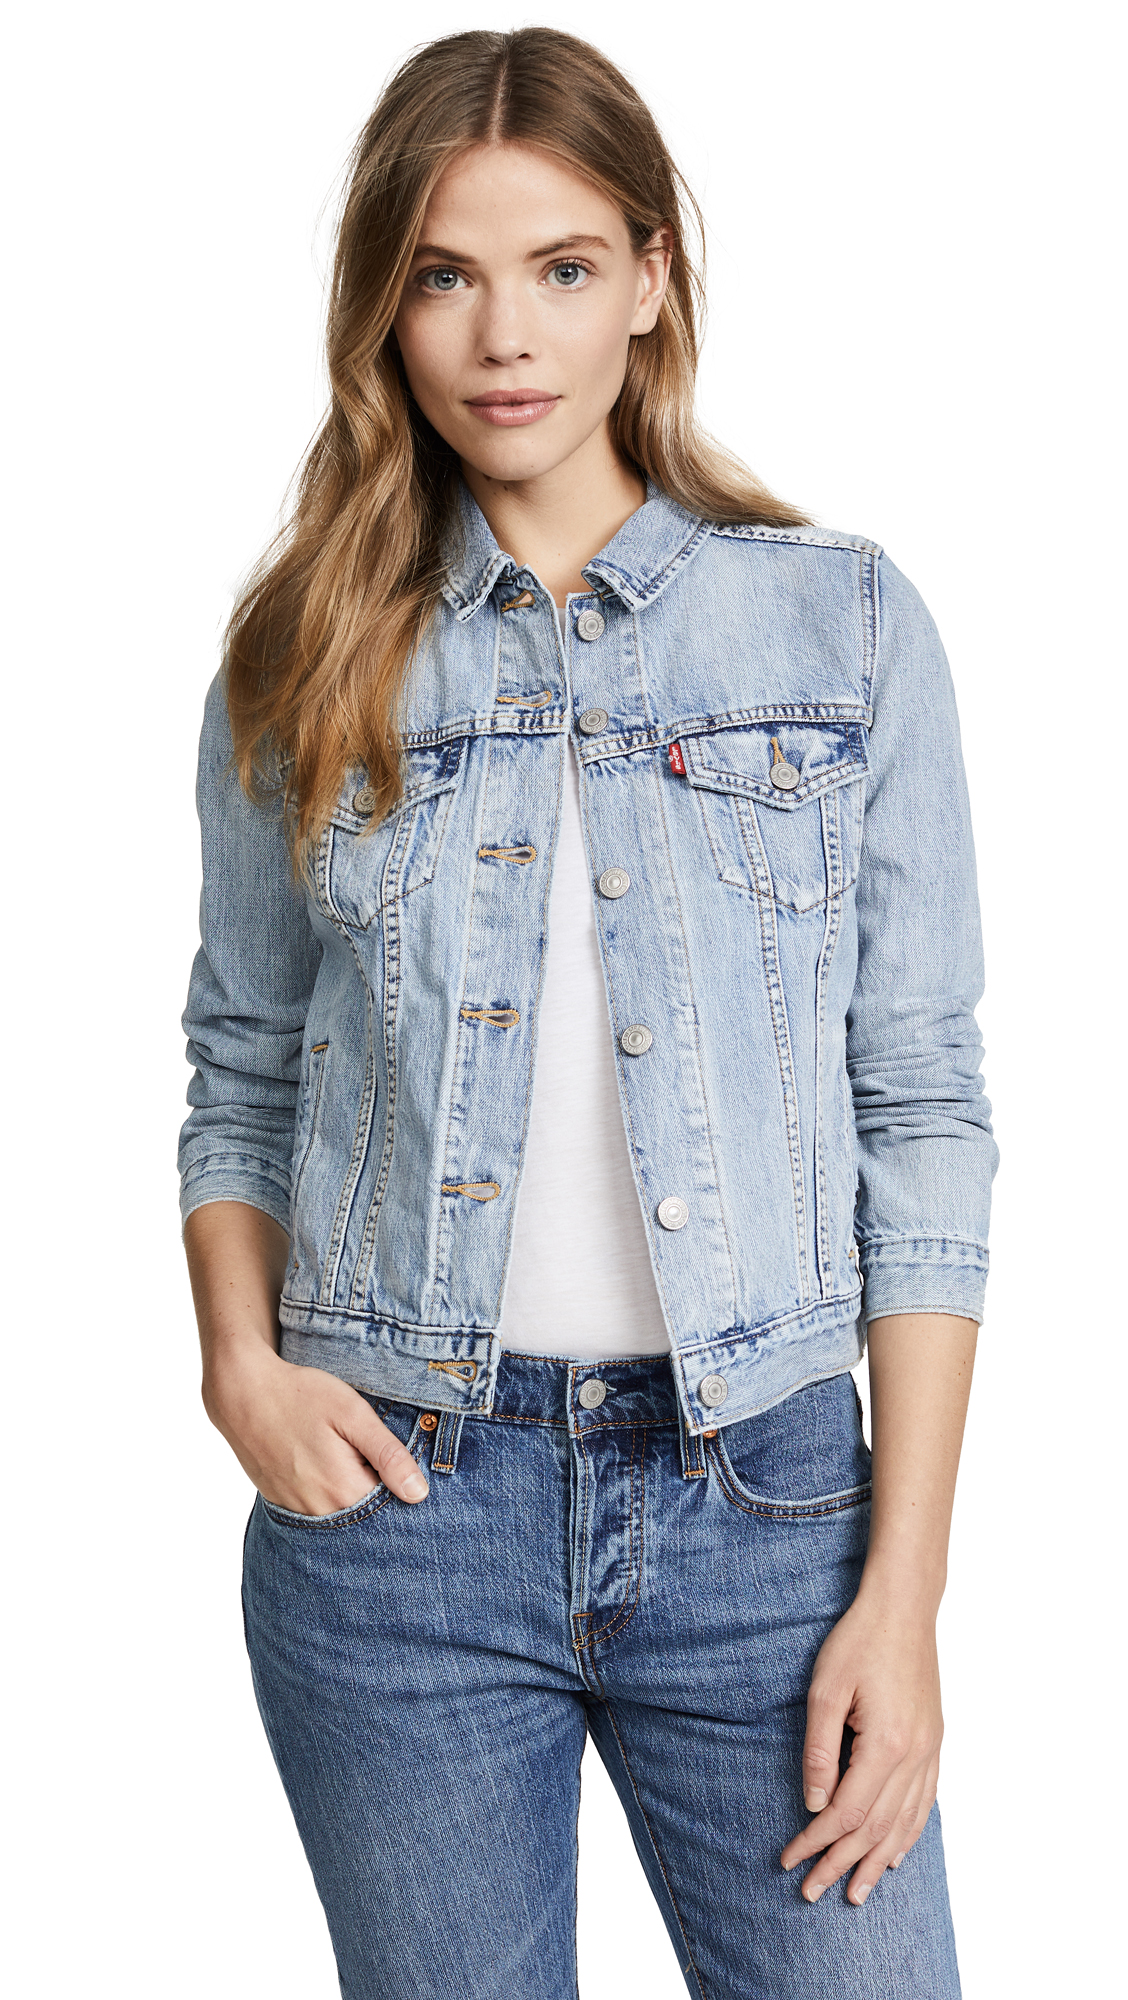 Photo of Levi's The Original Trucker Jacket online jackets sales